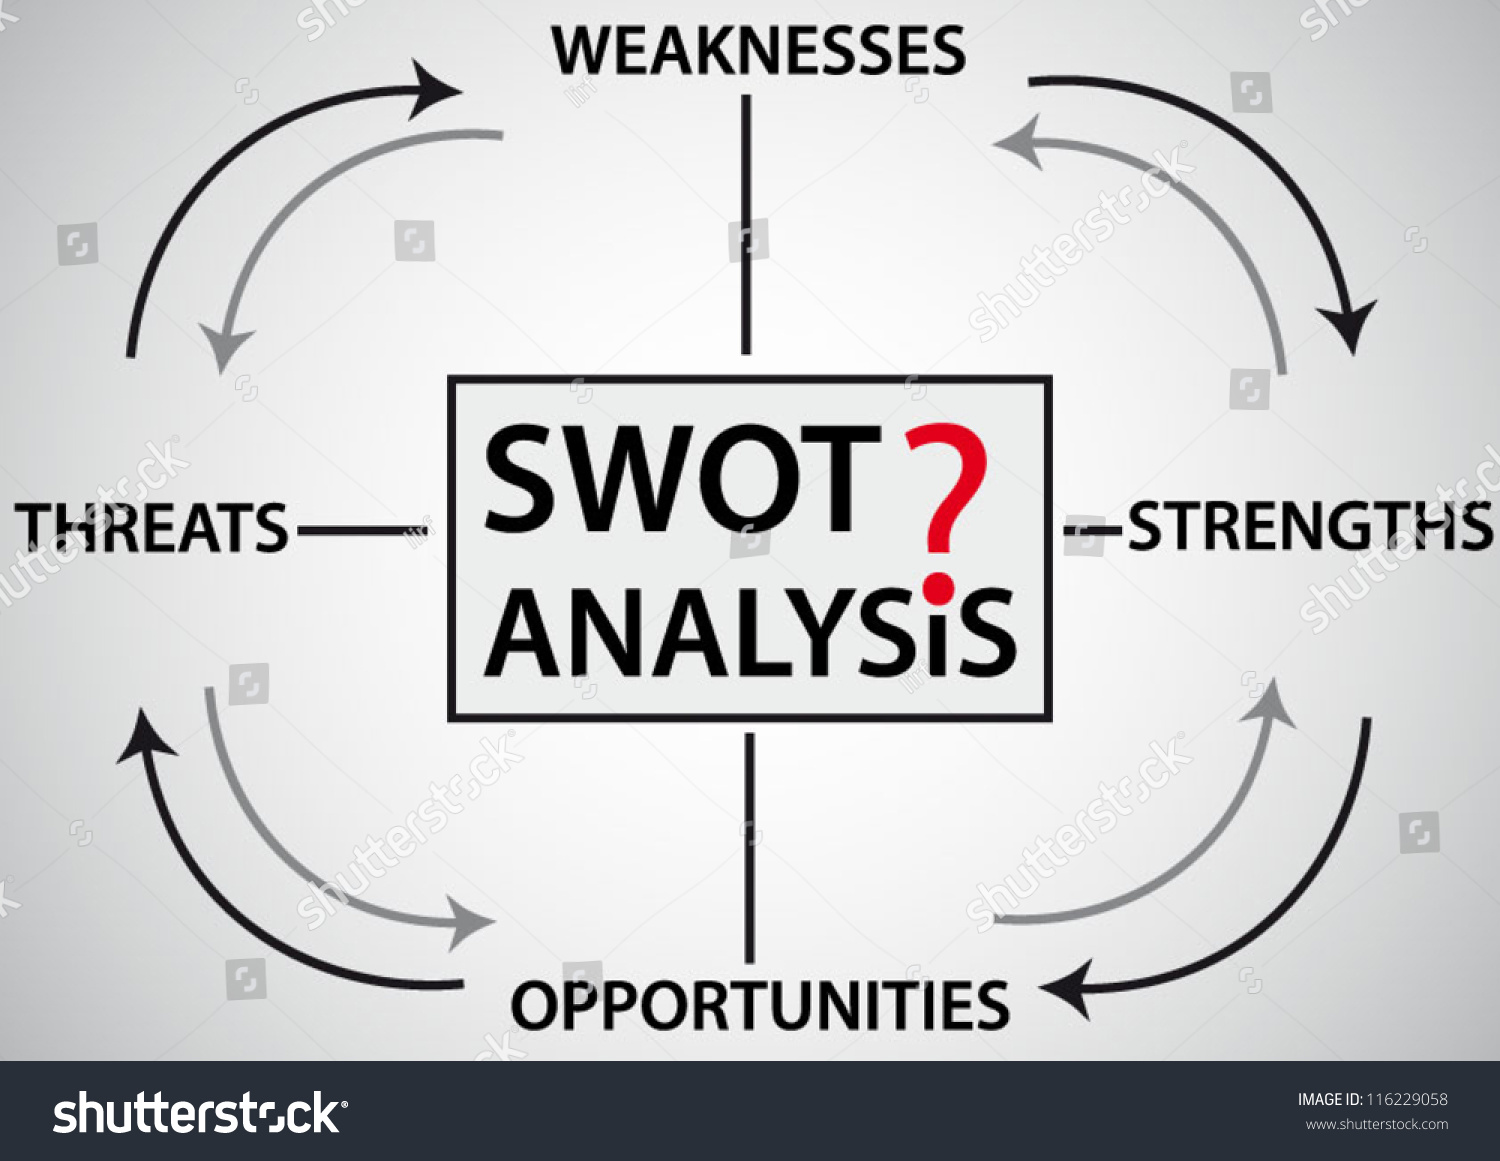 swot analysis strength weakness opportunities threats stock vector swot analysis strength weakness opportunities and threats words on banner